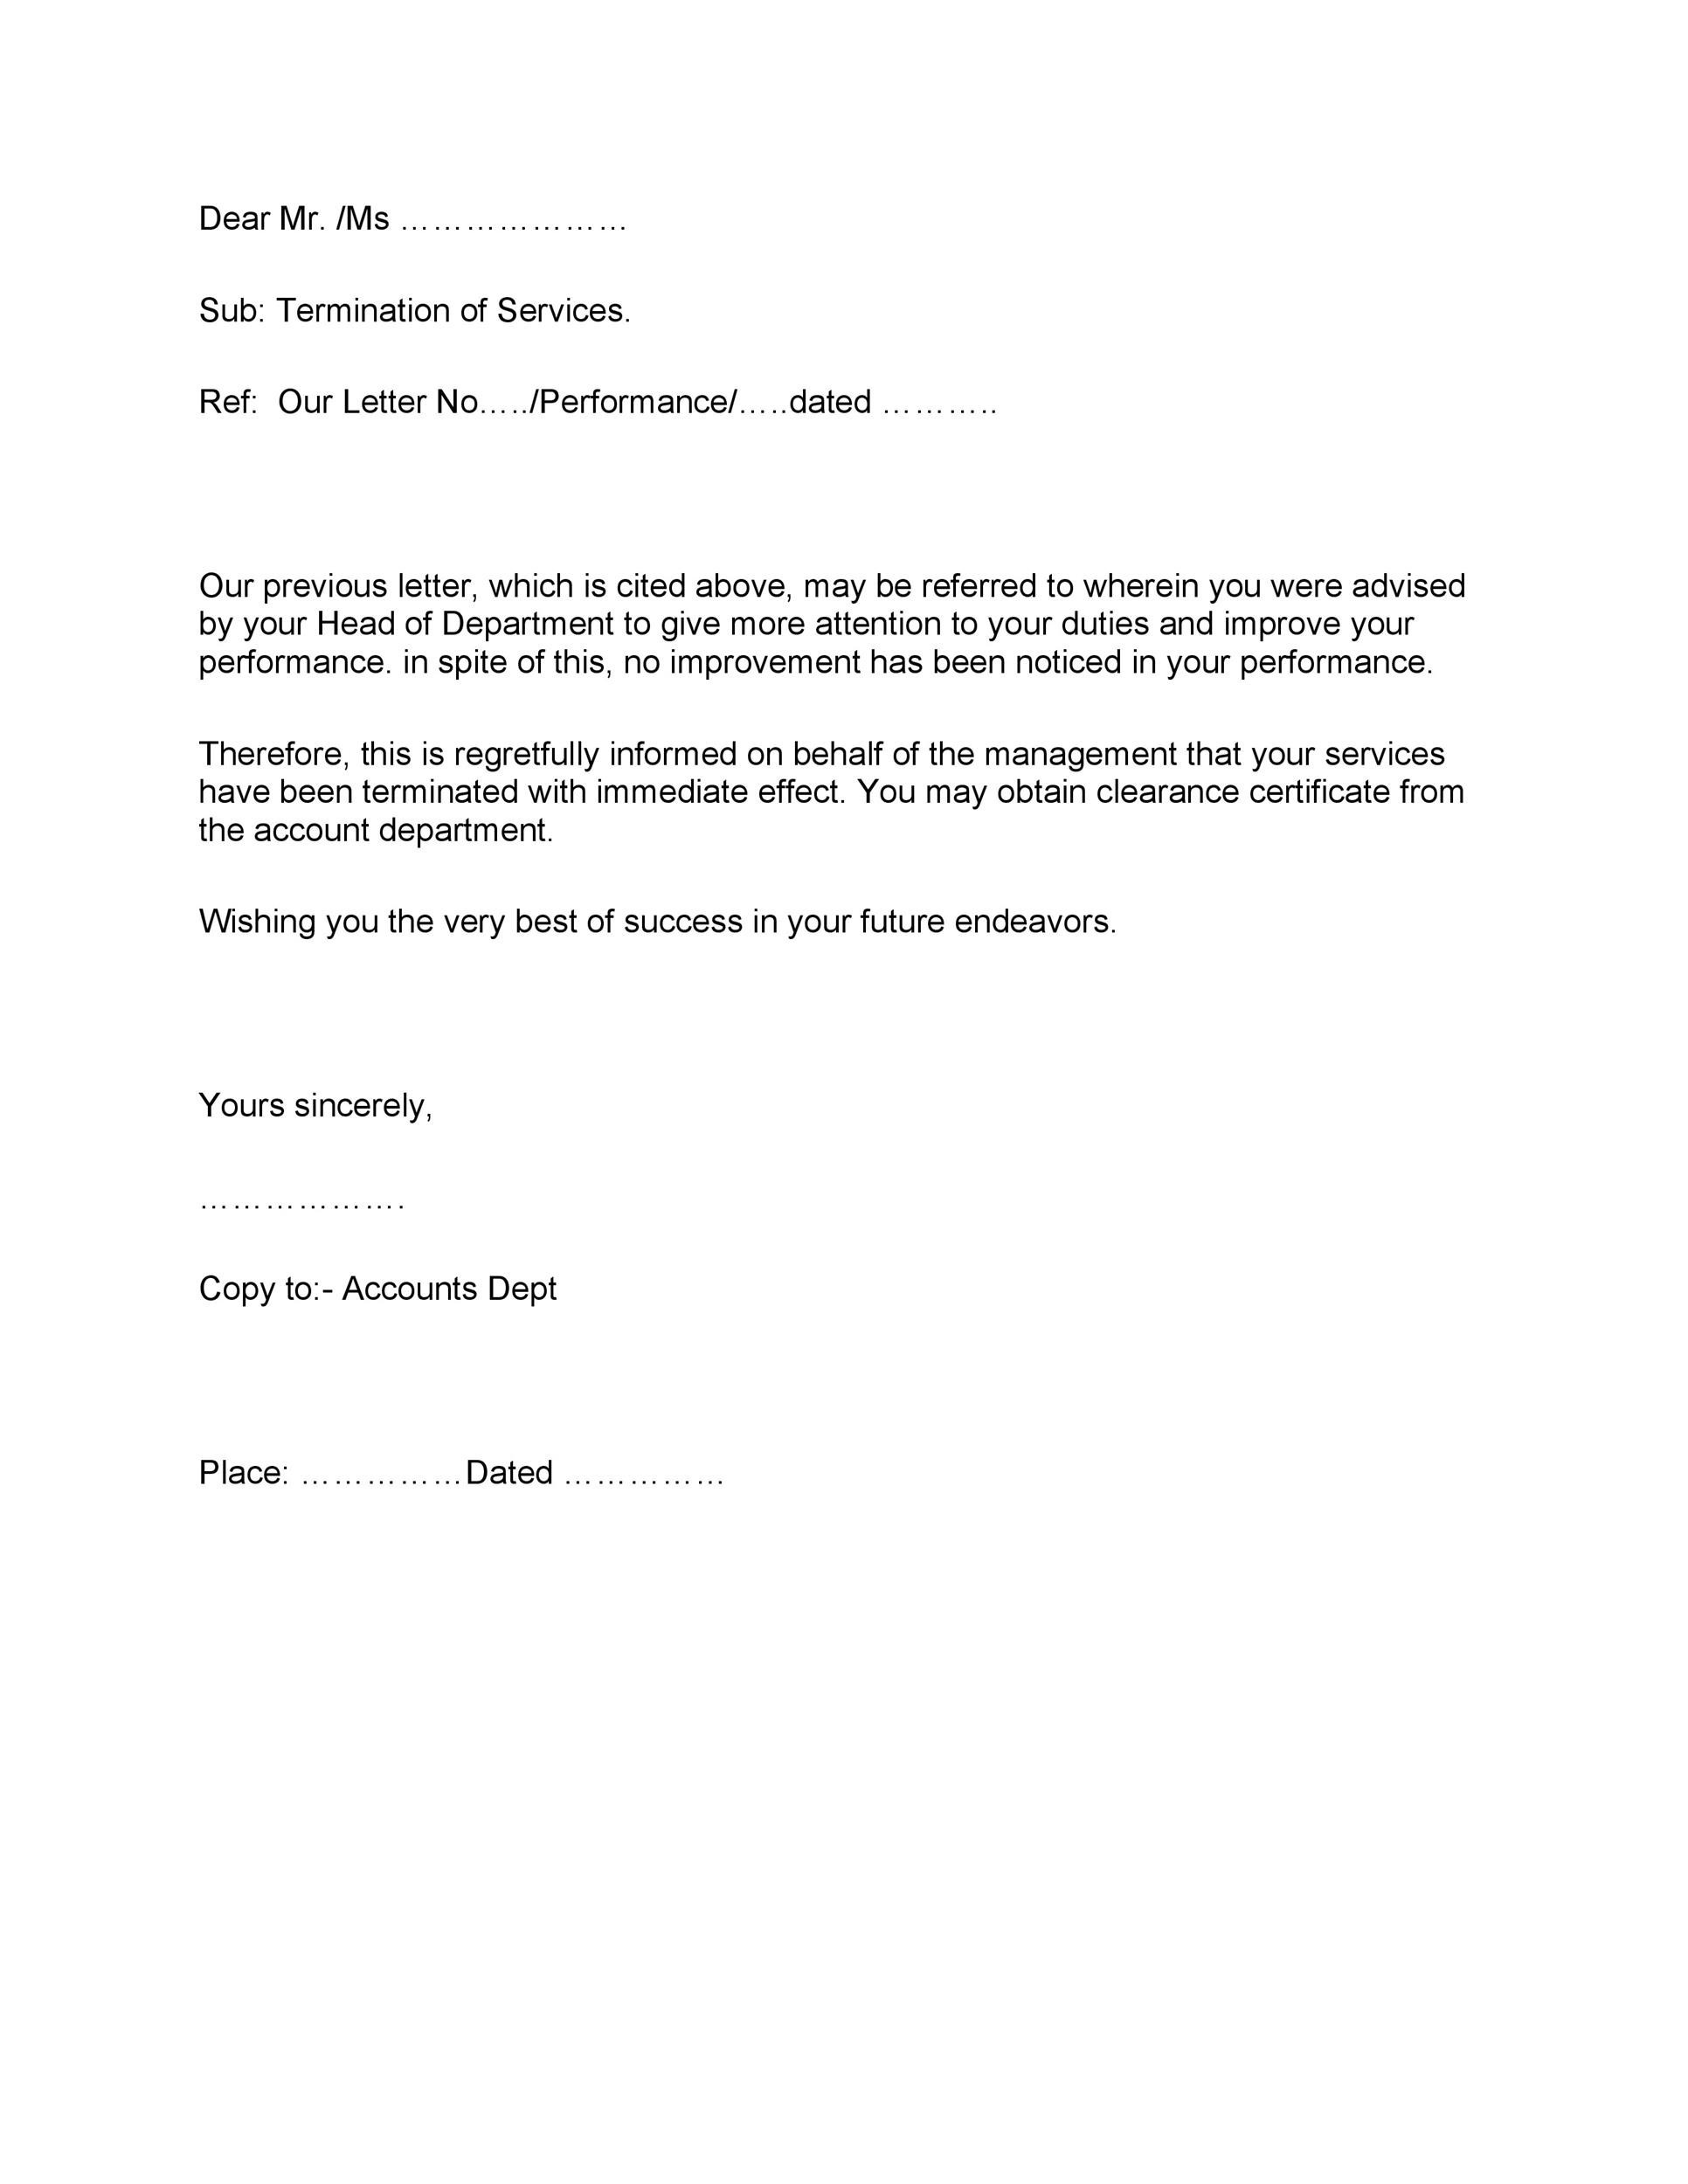 Job Termination Appeal Letter Template Word Doc Termination